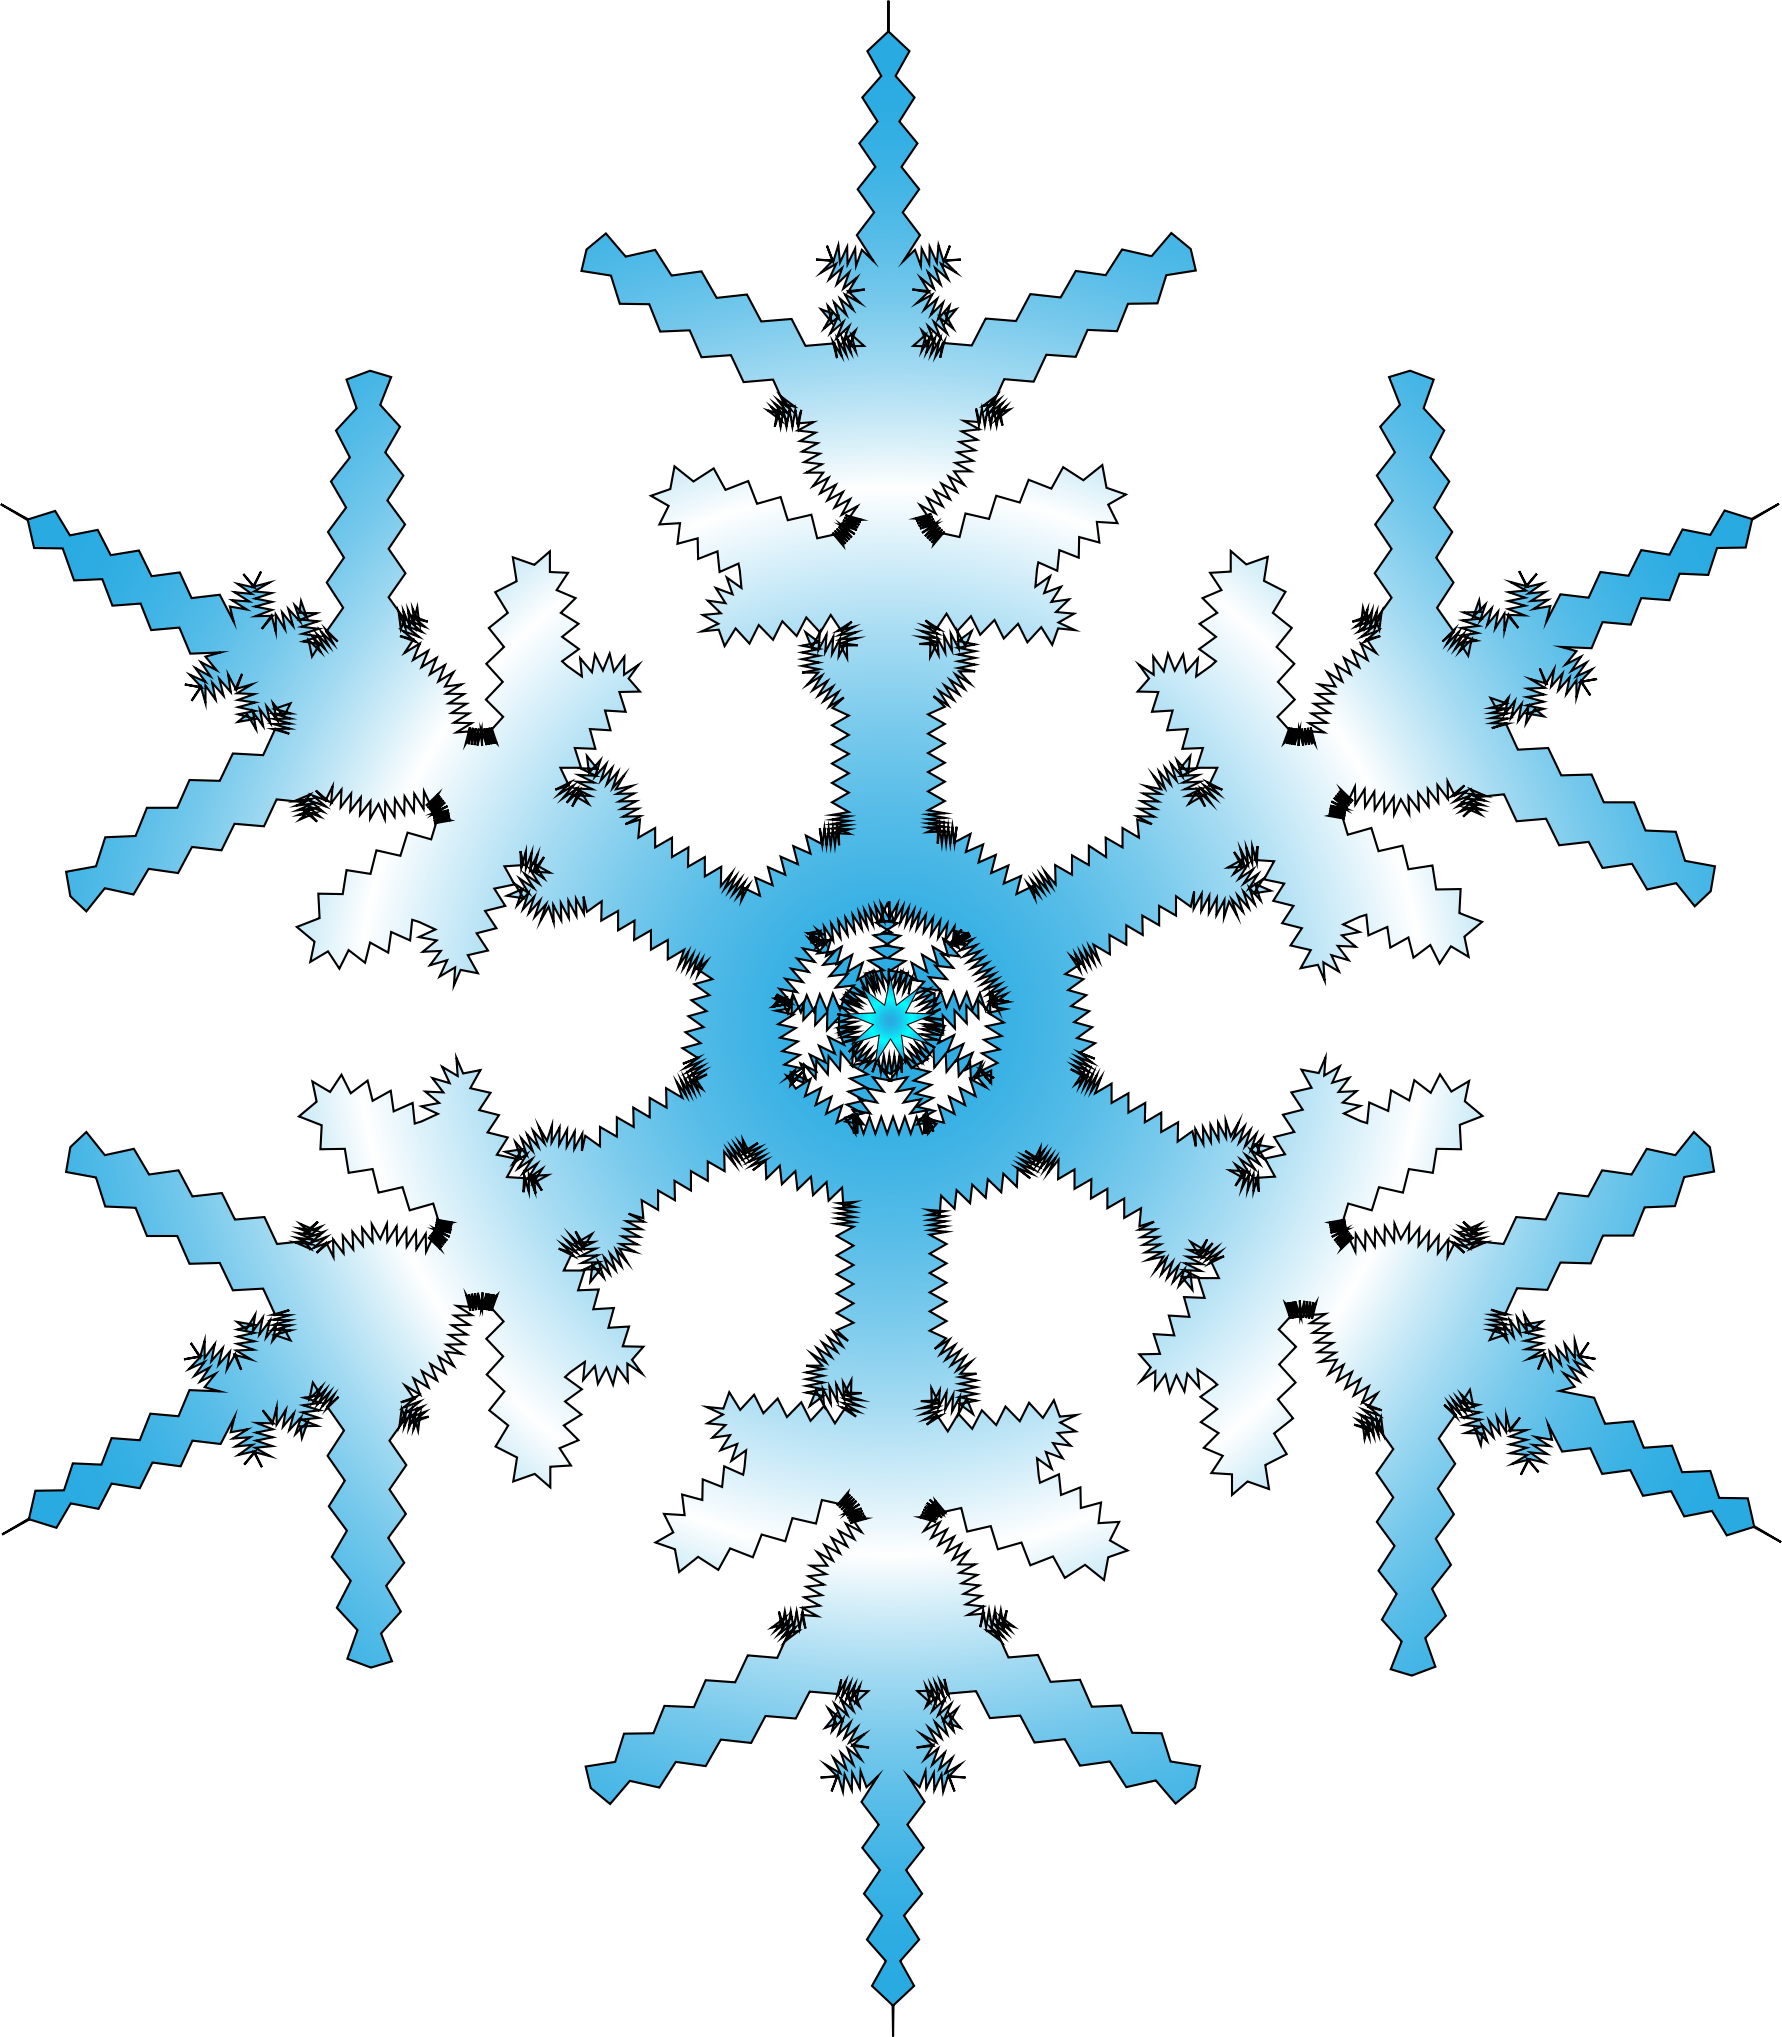 Crystal snowflake clipart vector transparent stock Clipart - Snowflake vector transparent stock